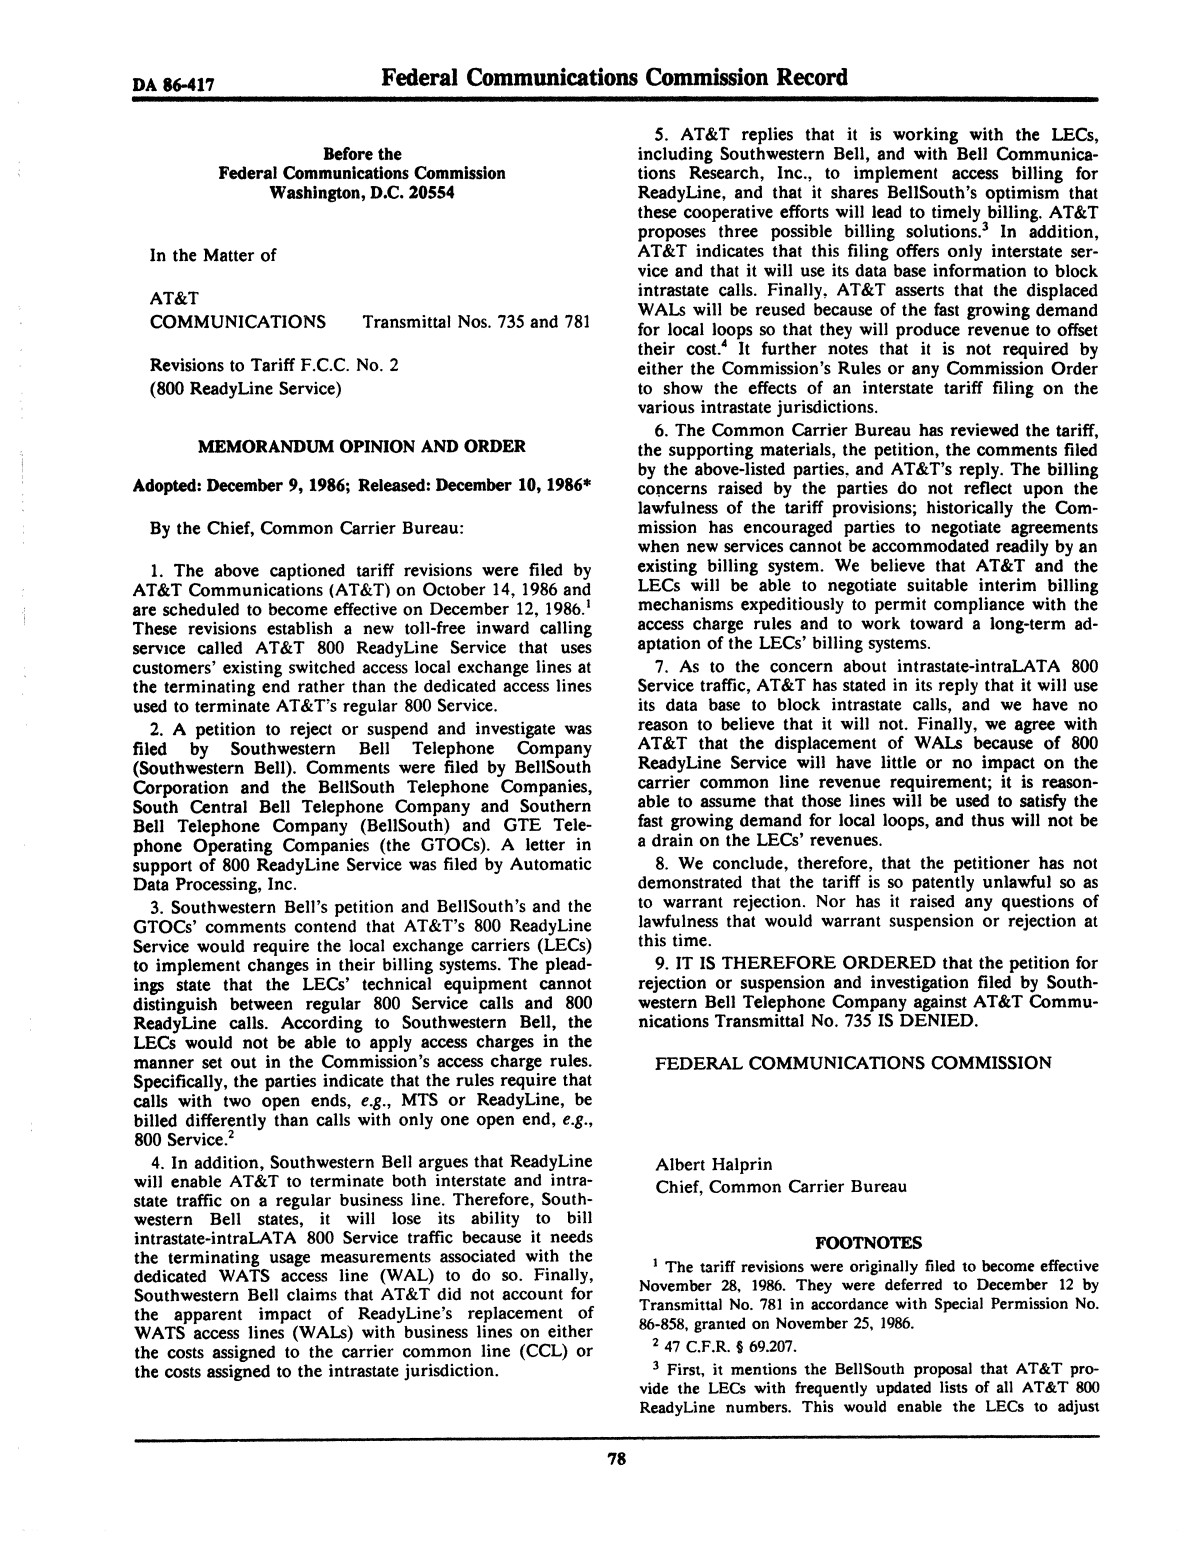 FCC Record, Volume 2, No. 1, Pages 1 to 409, January 5 - January 16, 1987                                                                                                      78